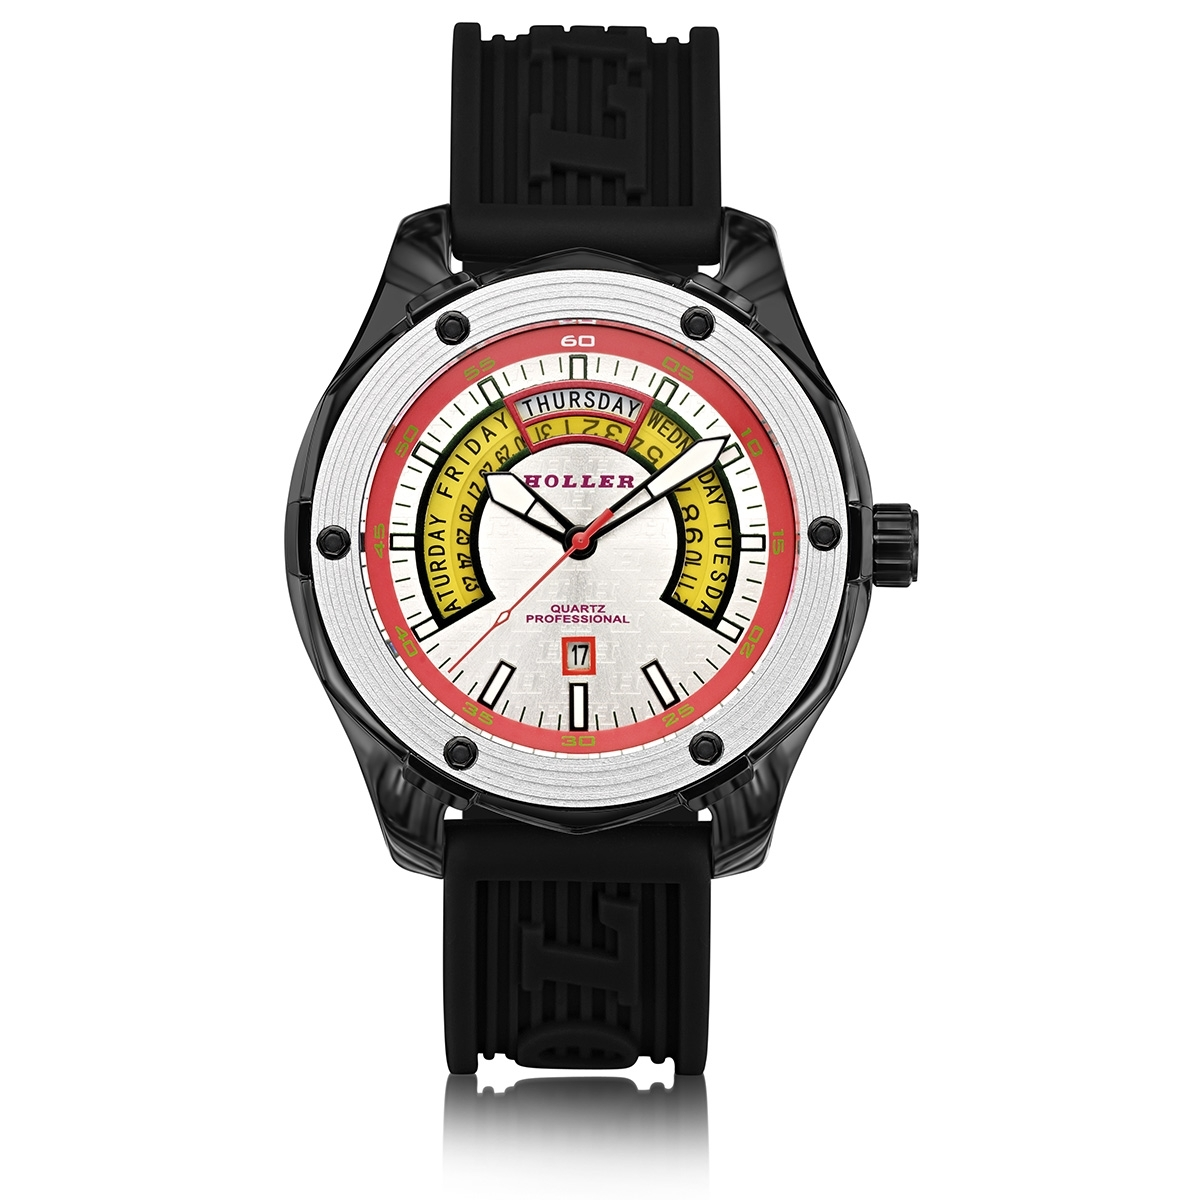 Superfly Black & White Watch